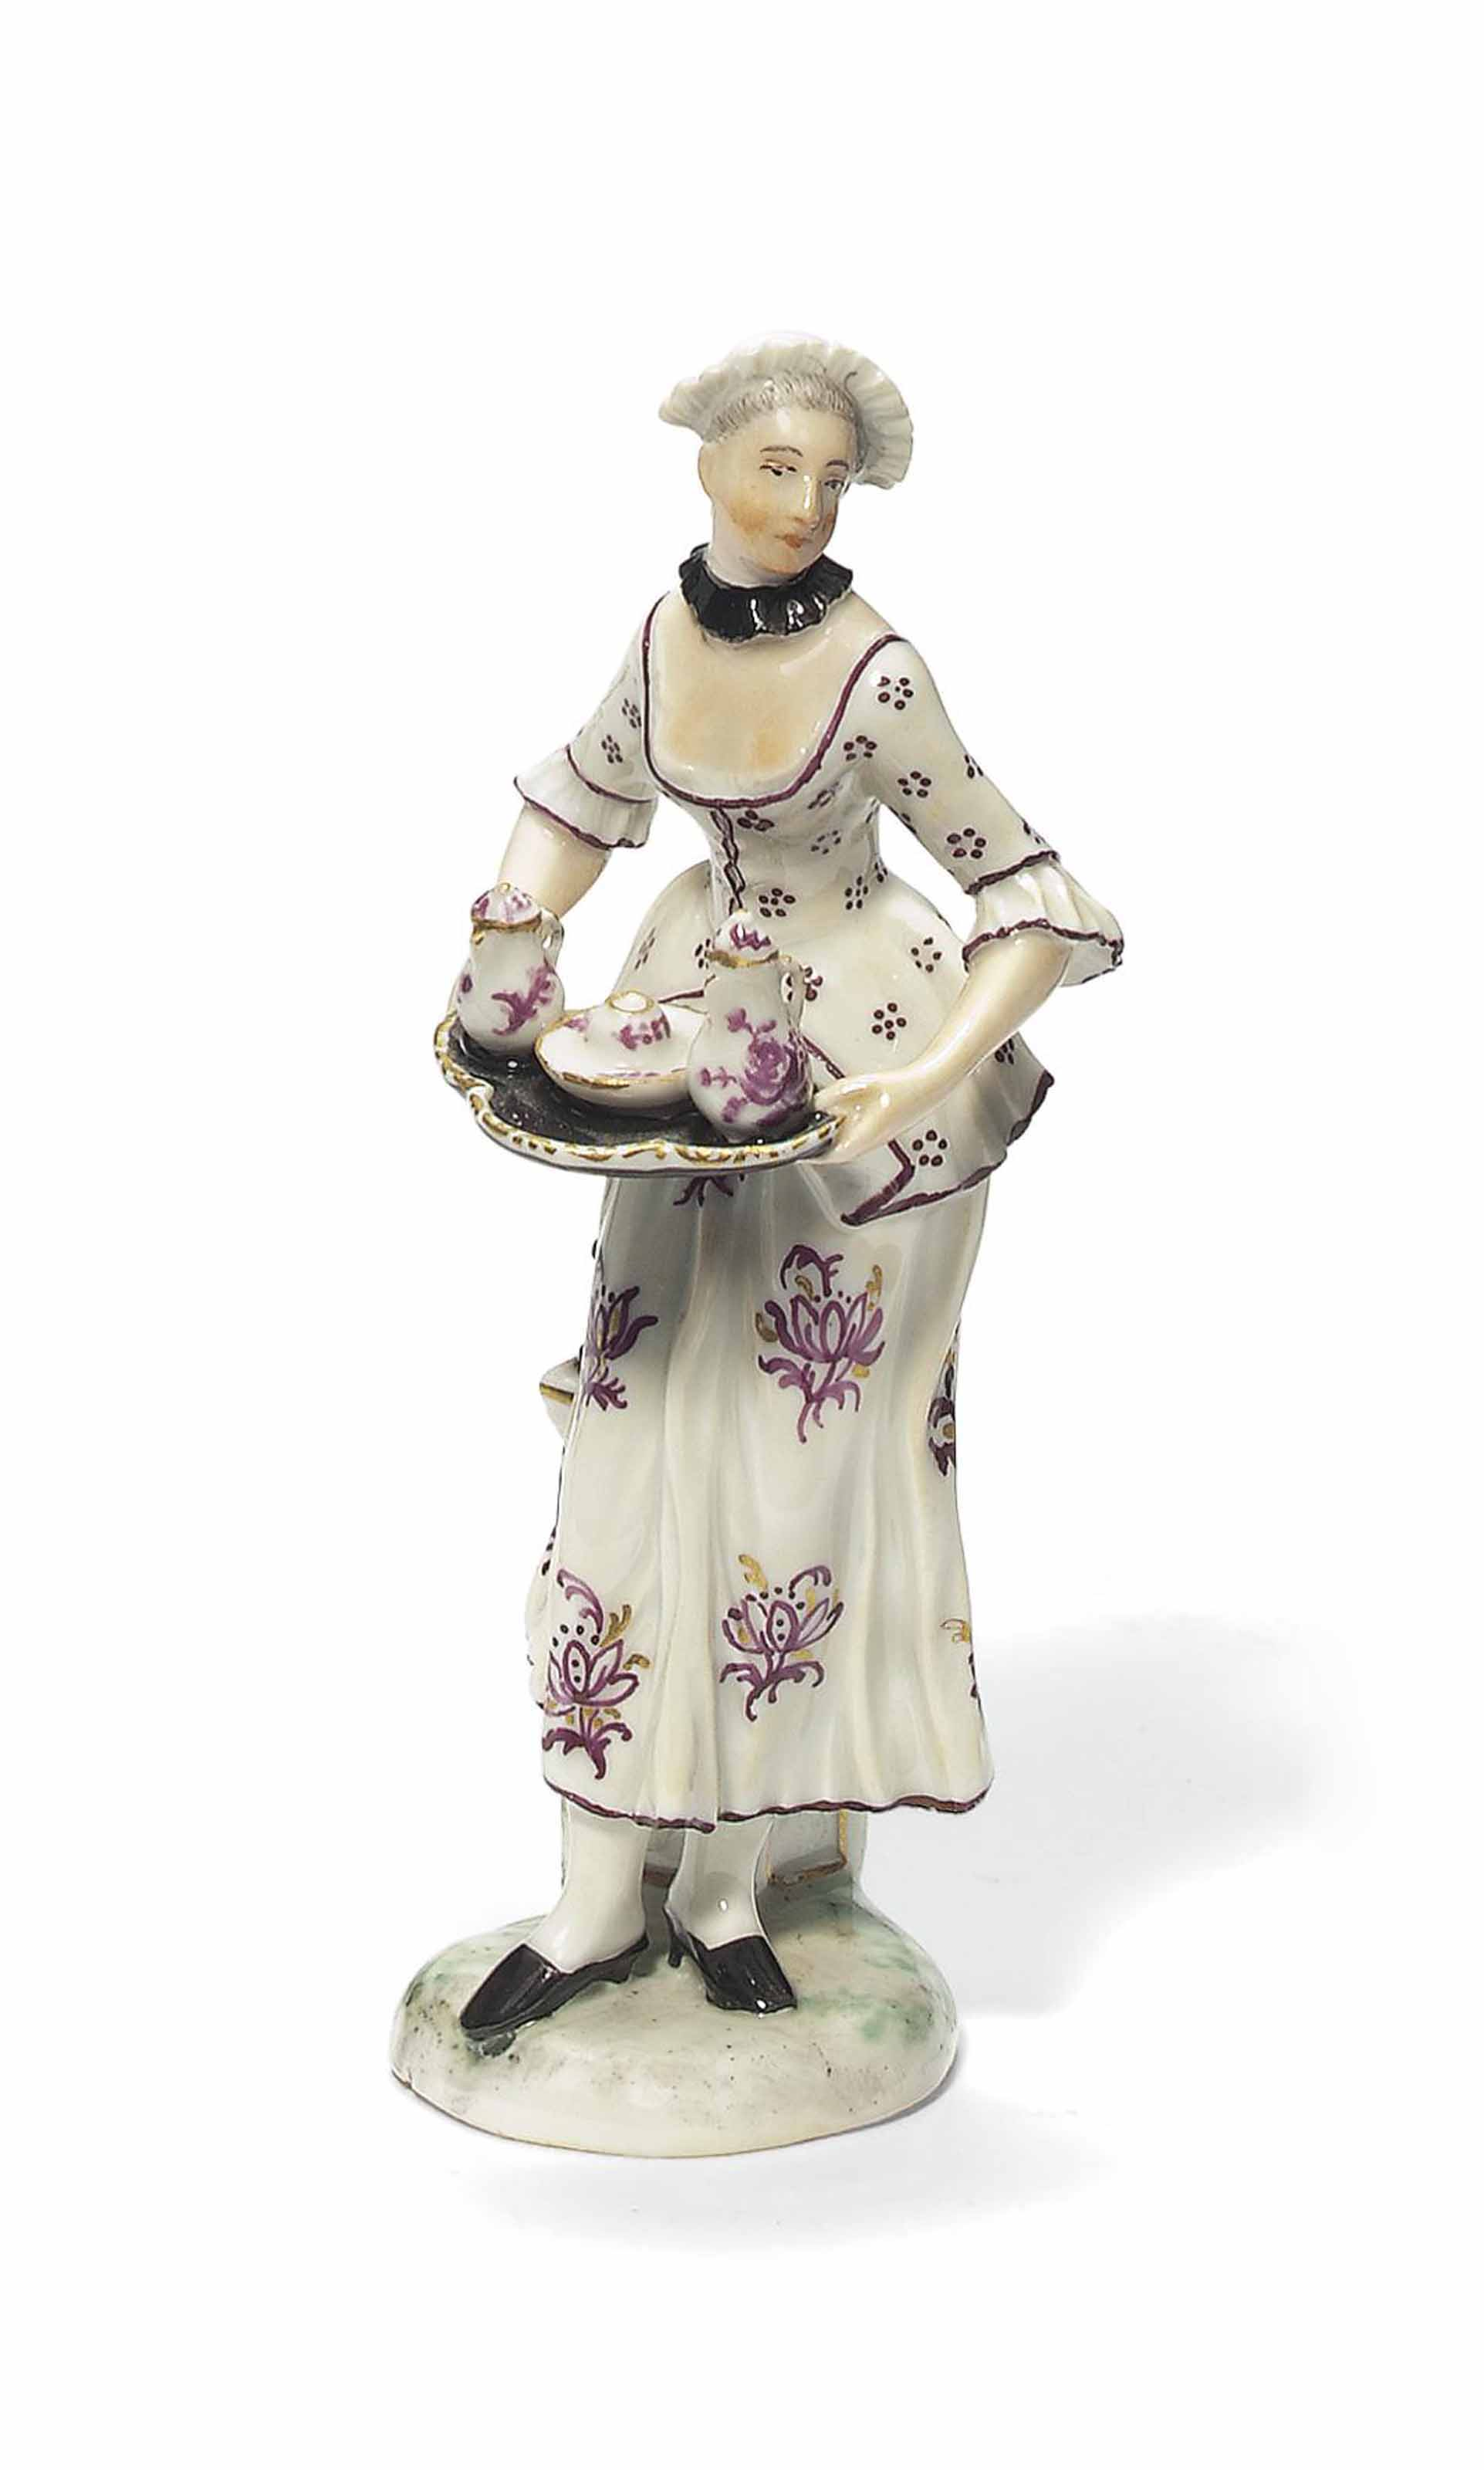 A LUDWIGSBURG FIGURE OF A MAIDSERVANT